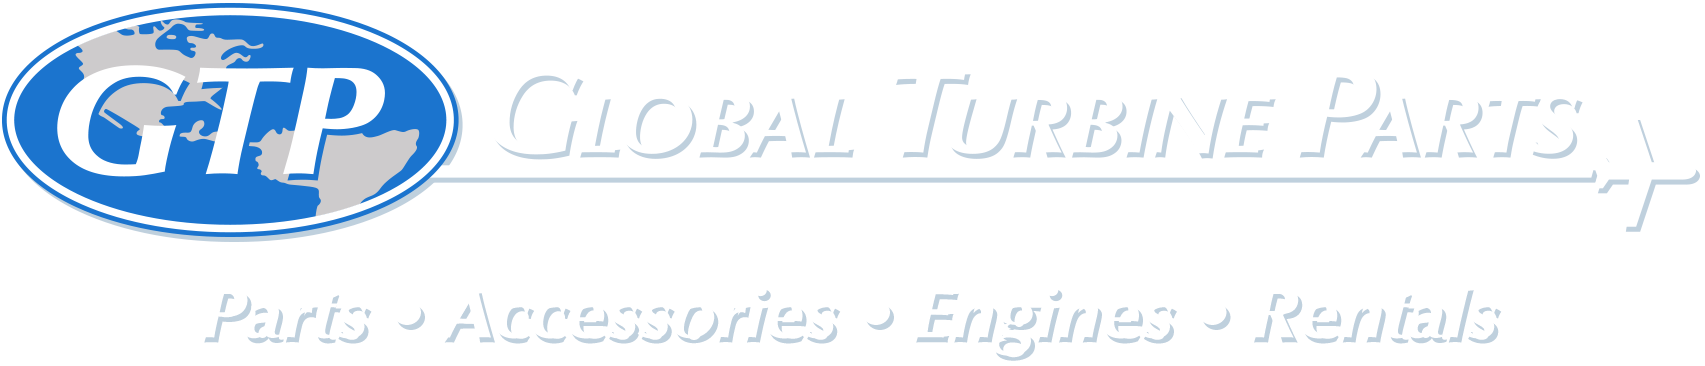 Global Turbine Parts Logo White